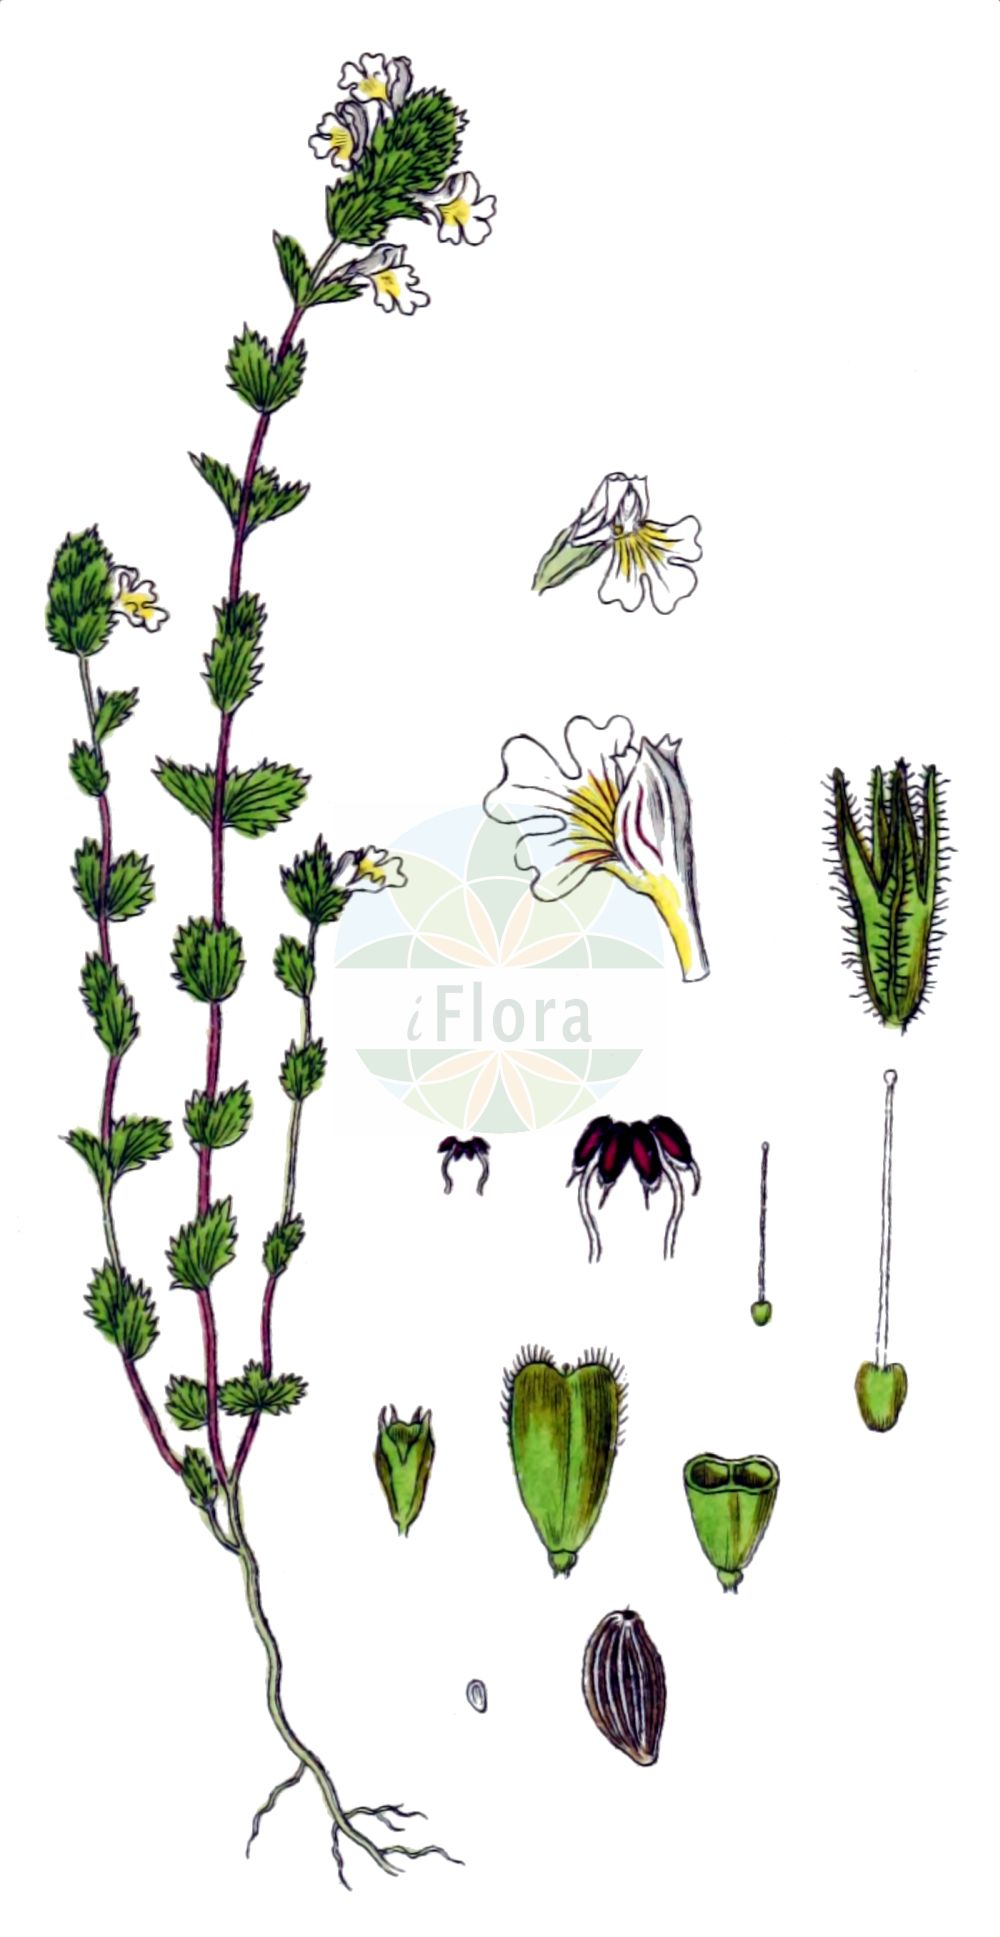 Historische Abbildung von Euphrasia rostkoviana (Bunter Augentrost - Eyebright). Das Bild zeigt Blatt, Bluete, Frucht und Same. ---- Historical Drawing of Euphrasia rostkoviana (Bunter Augentrost - Eyebright).The image is showing leaf, flower, fruit and seed.(Euphrasia rostkoviana,Bunter Augentrost,Eyebright,Euphrasia officinalis,Euphrasia pratensis,Euphrasia rostkoviana,Bunter Augentrost,Gewoehnlicher Augentrost,Grosser Augentrost,Wiesen-Augentrost,Eyebright,Euphrasia,Augentrost,Eyebright,Orobanchaceae,Sommerwurzgewaechse,Broomrape family,Blatt,Bluete,Frucht,Same,leaf,flower,fruit,seed,Sturm (1796f))